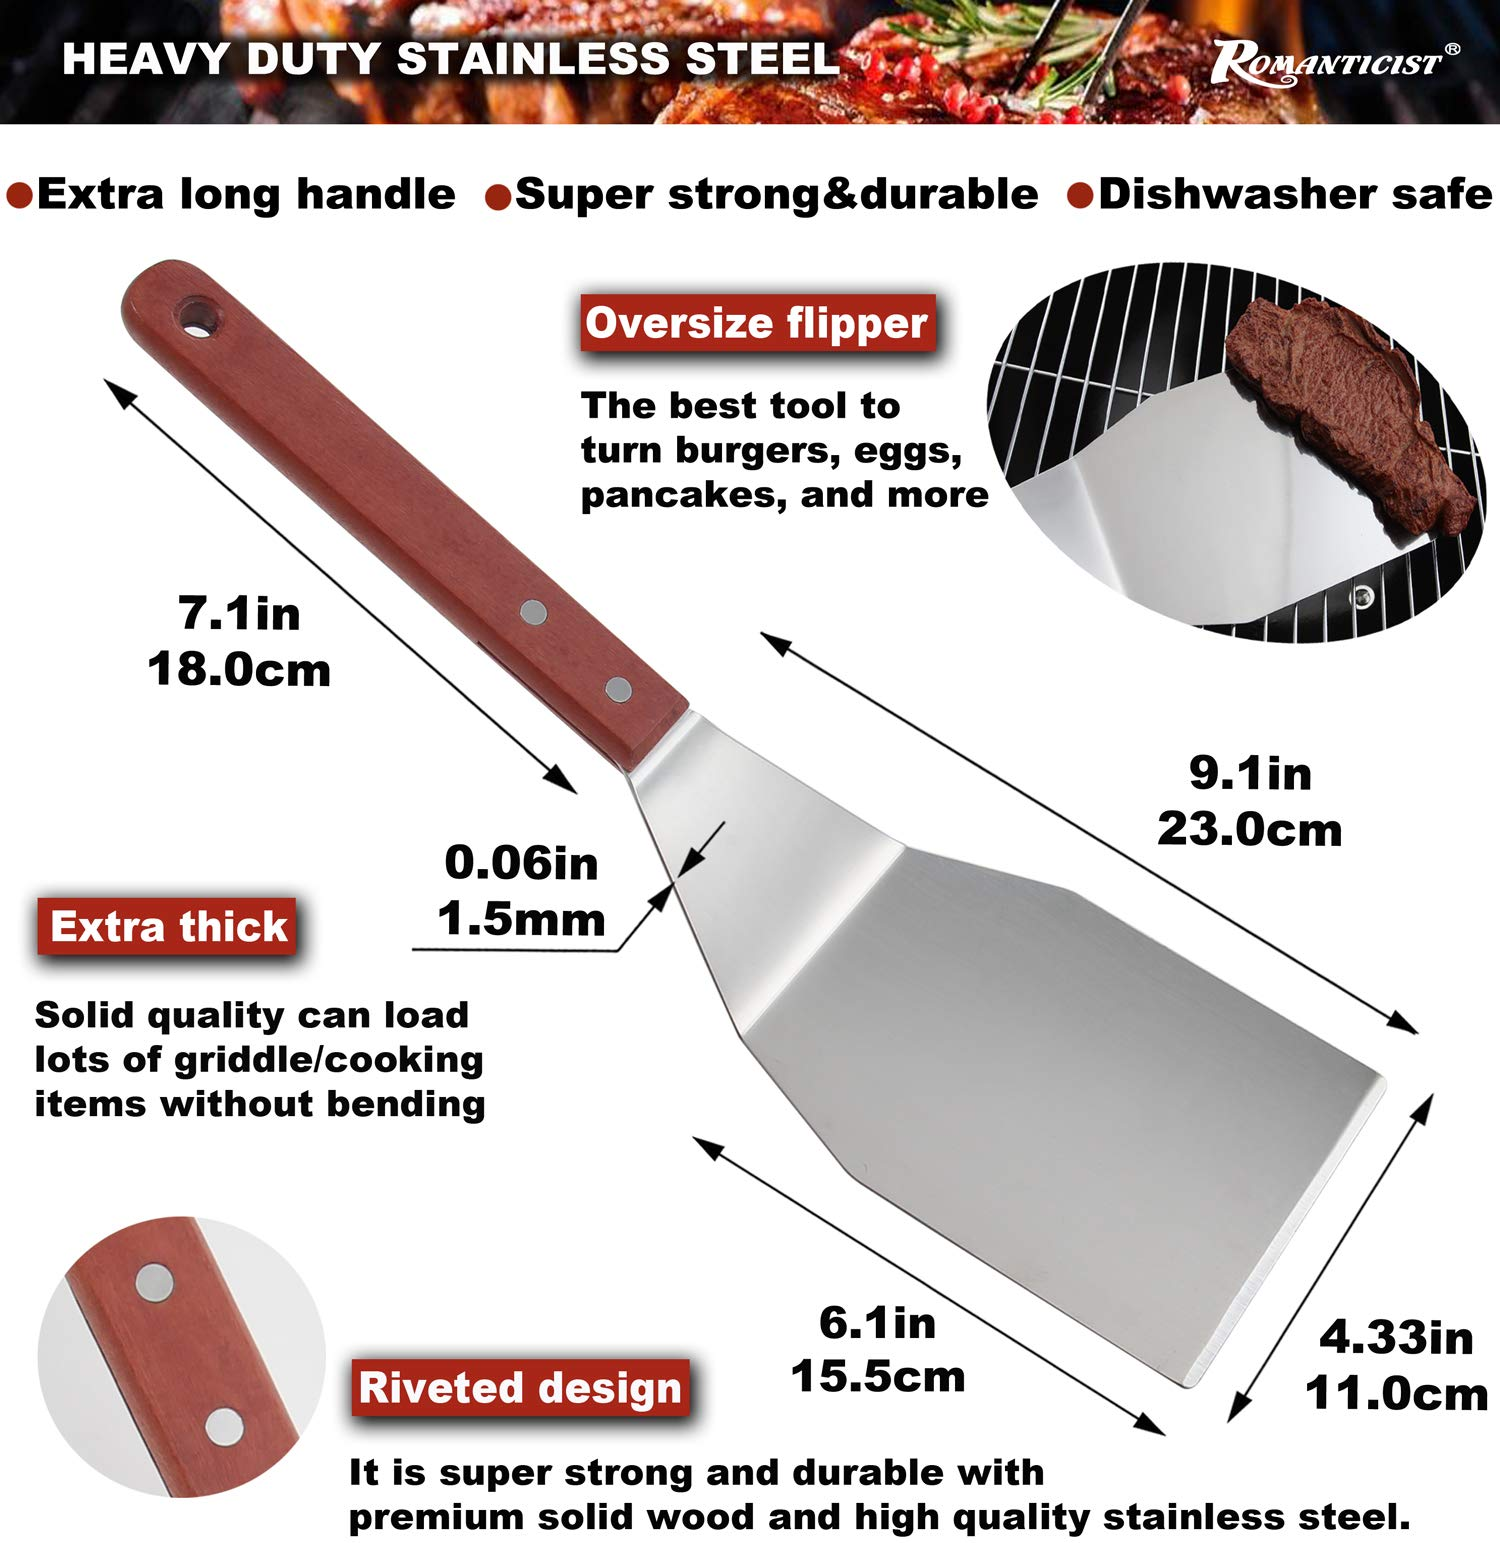 ROMANTICIST 8pc Griddle Accessories with 7'' Extra Long Deluxe Wood Handle - Premium Griddle Spatula Set in Carrying Bag for Flat Top Grill Hibachi - Perfect Grill Gift for Men Dad on Fathers Day by ROMANTICIST (Image #3)